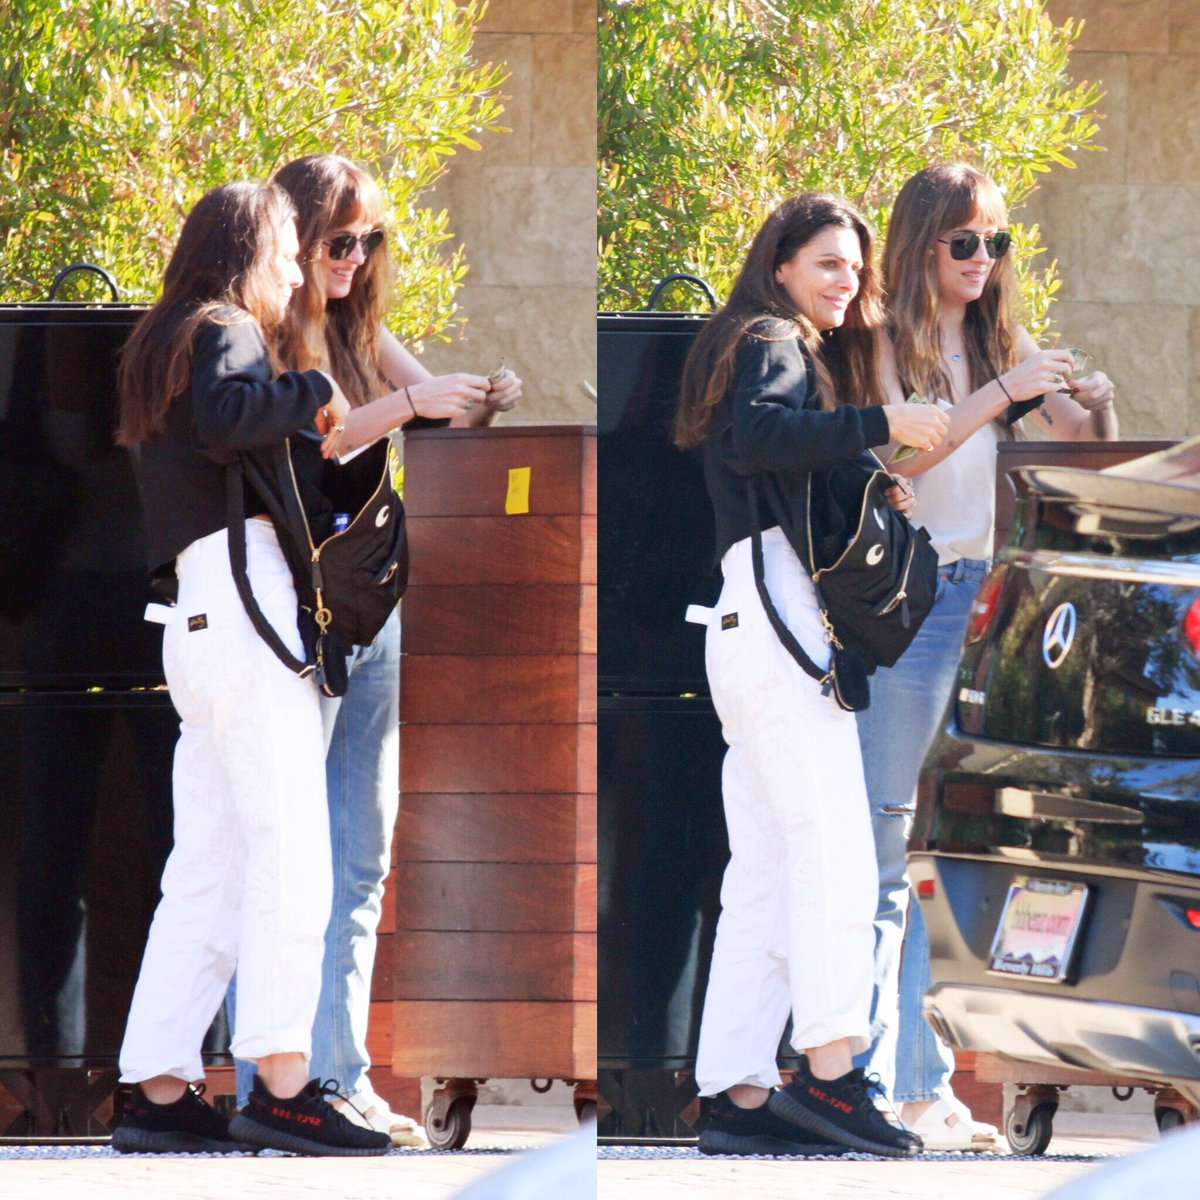 October 10th, Dakota out for lunch with a friend.  #DakotaJohnson   // PicturePub <br>http://pic.twitter.com/bdaZOvoAte